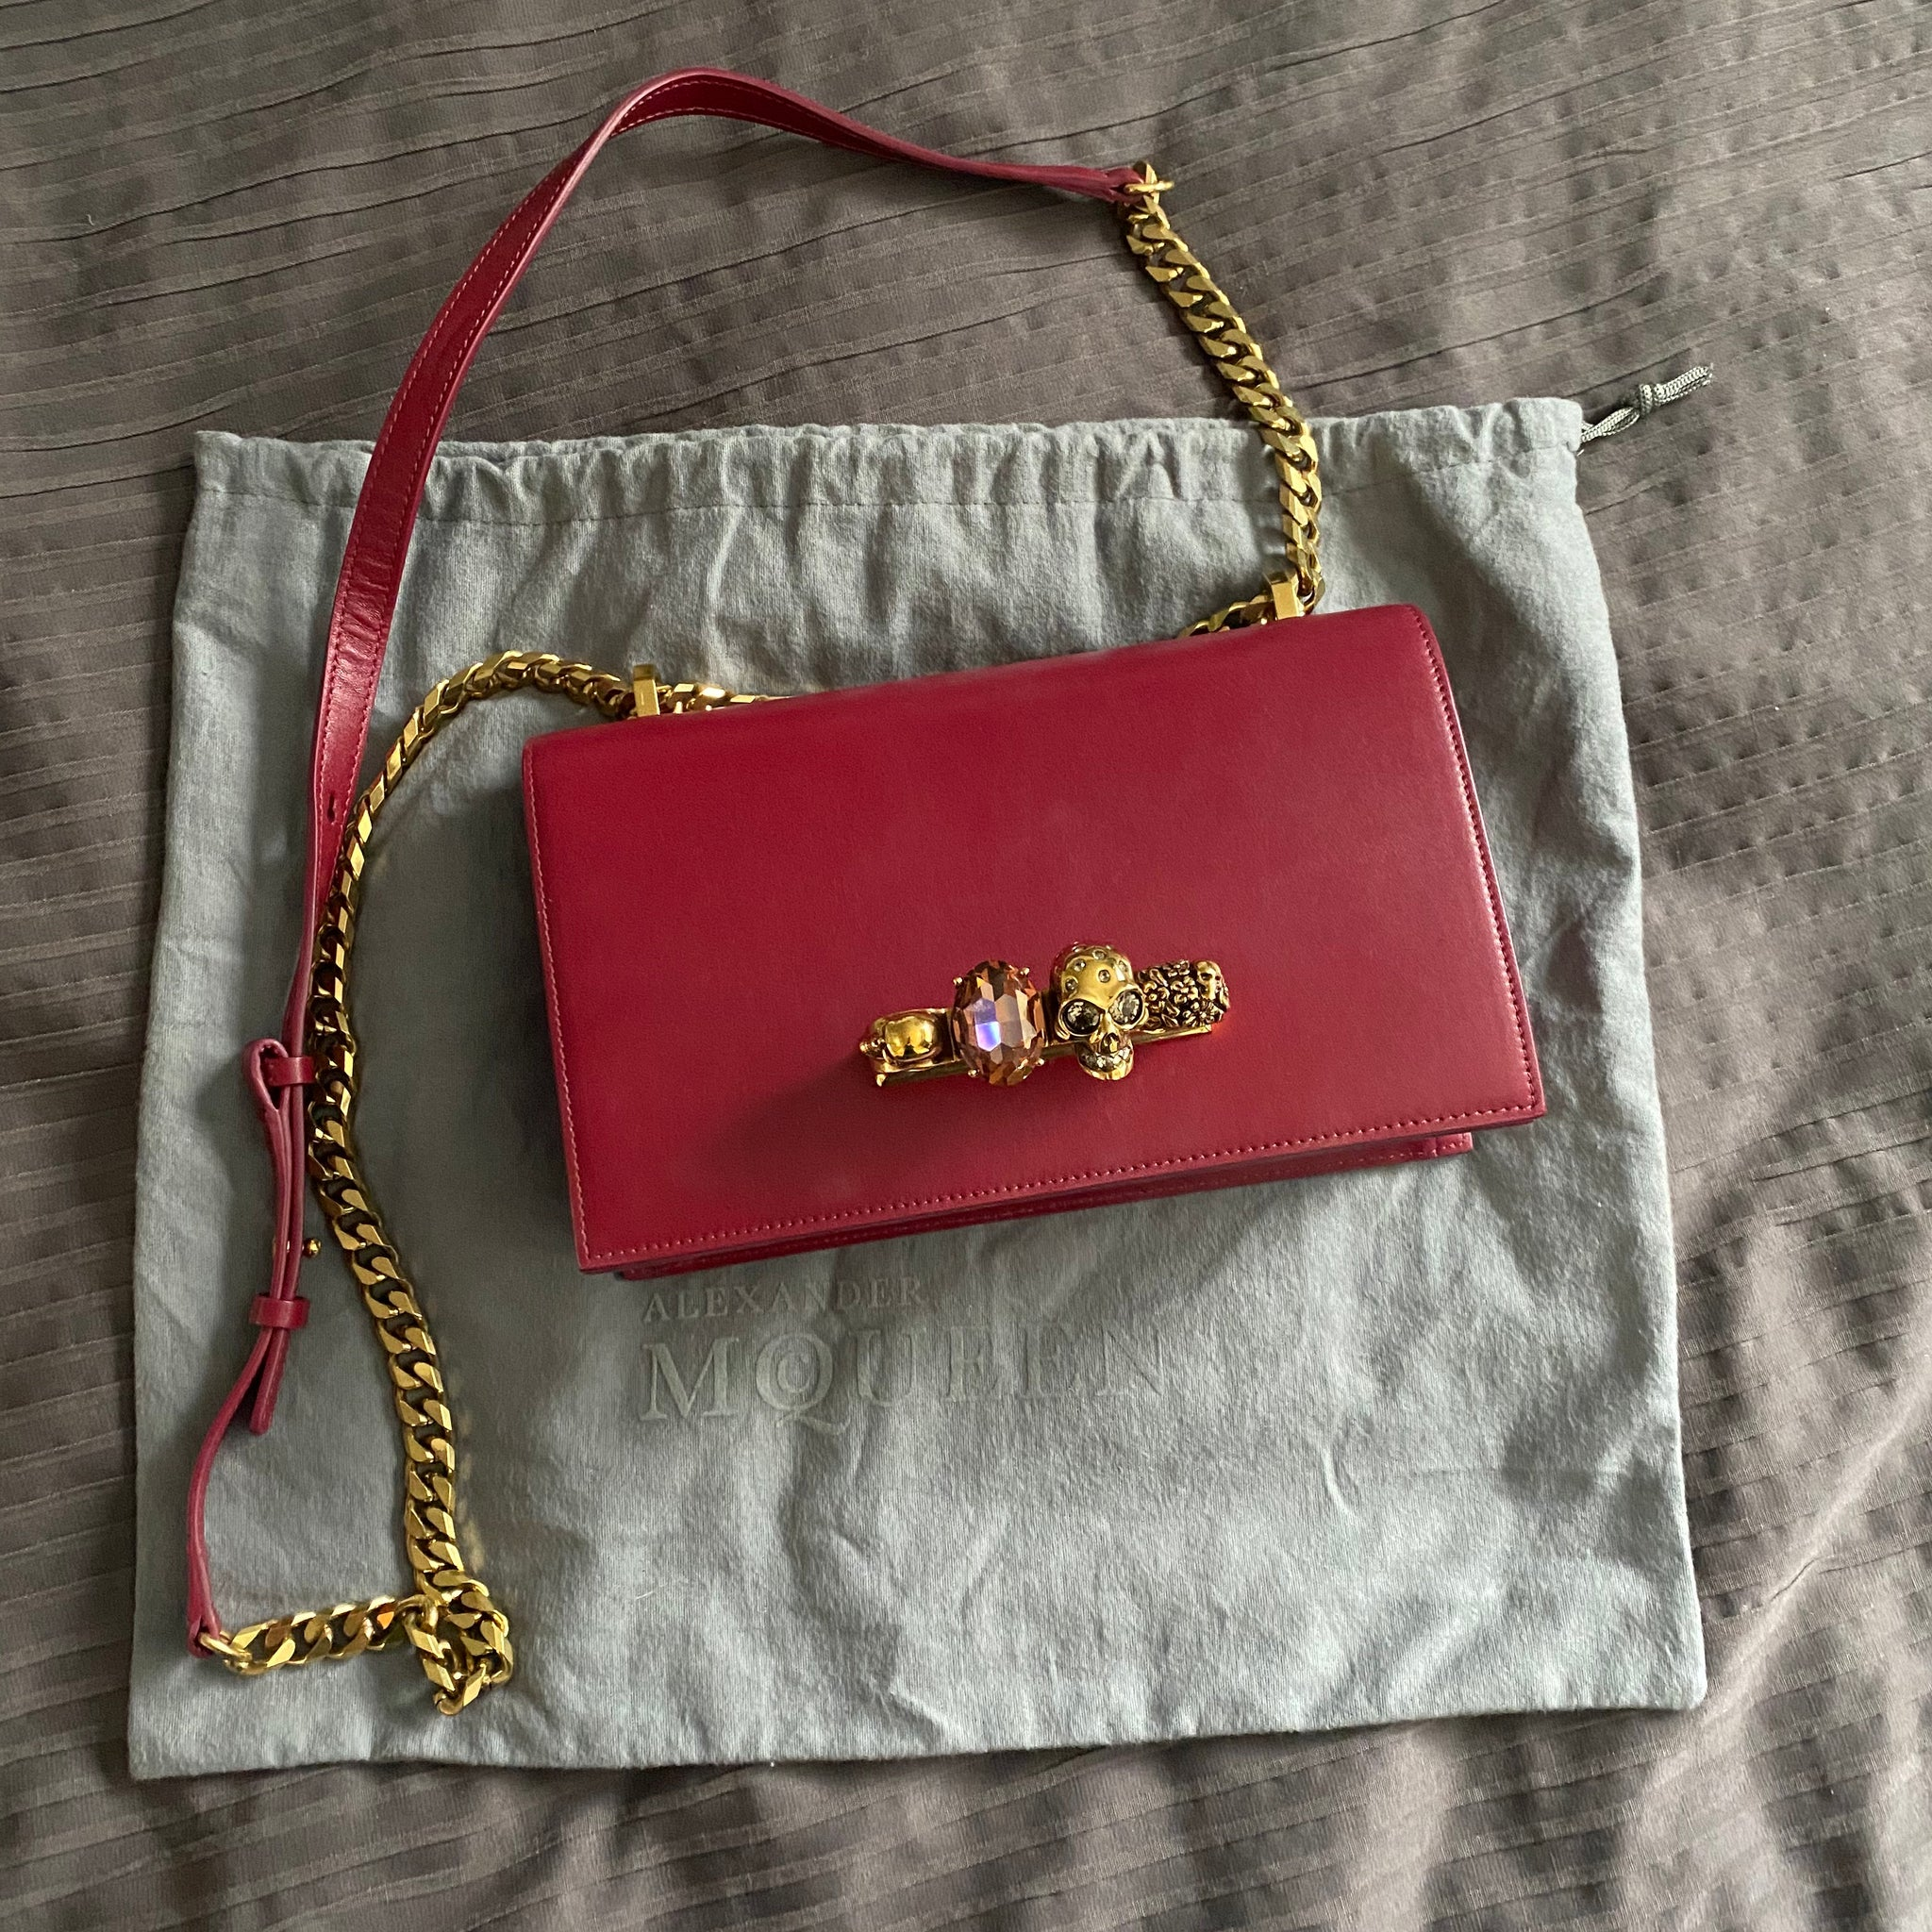 Alexander McQueen Jeweled Satchel Shoulder Bag